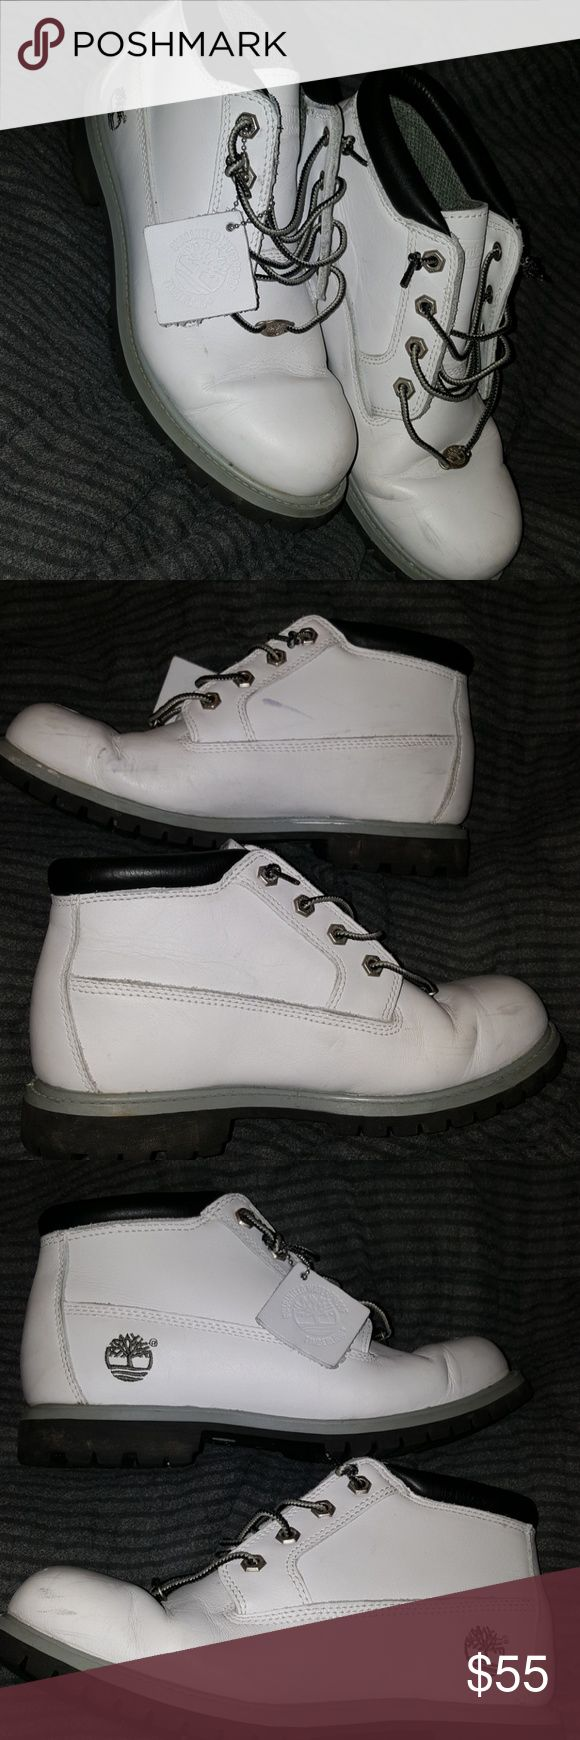 Lo Top White Timberland Boots Women's 9 📣📣📣PLEASE READ📣📣📣 🛍 Will entertain REASONABLE offers. Additional discounts available when you bundle!  🛍 All items from smoke-free, pet-free home.  🛍 I do NOT do trades, please don't ask.   Previously loved. Need some TLC. Pictures show that there are scrapes, smudges, creases, etc. Women's 9...usually equivalent to a Men's 7. Timberland Shoes Winter & Rain Boots